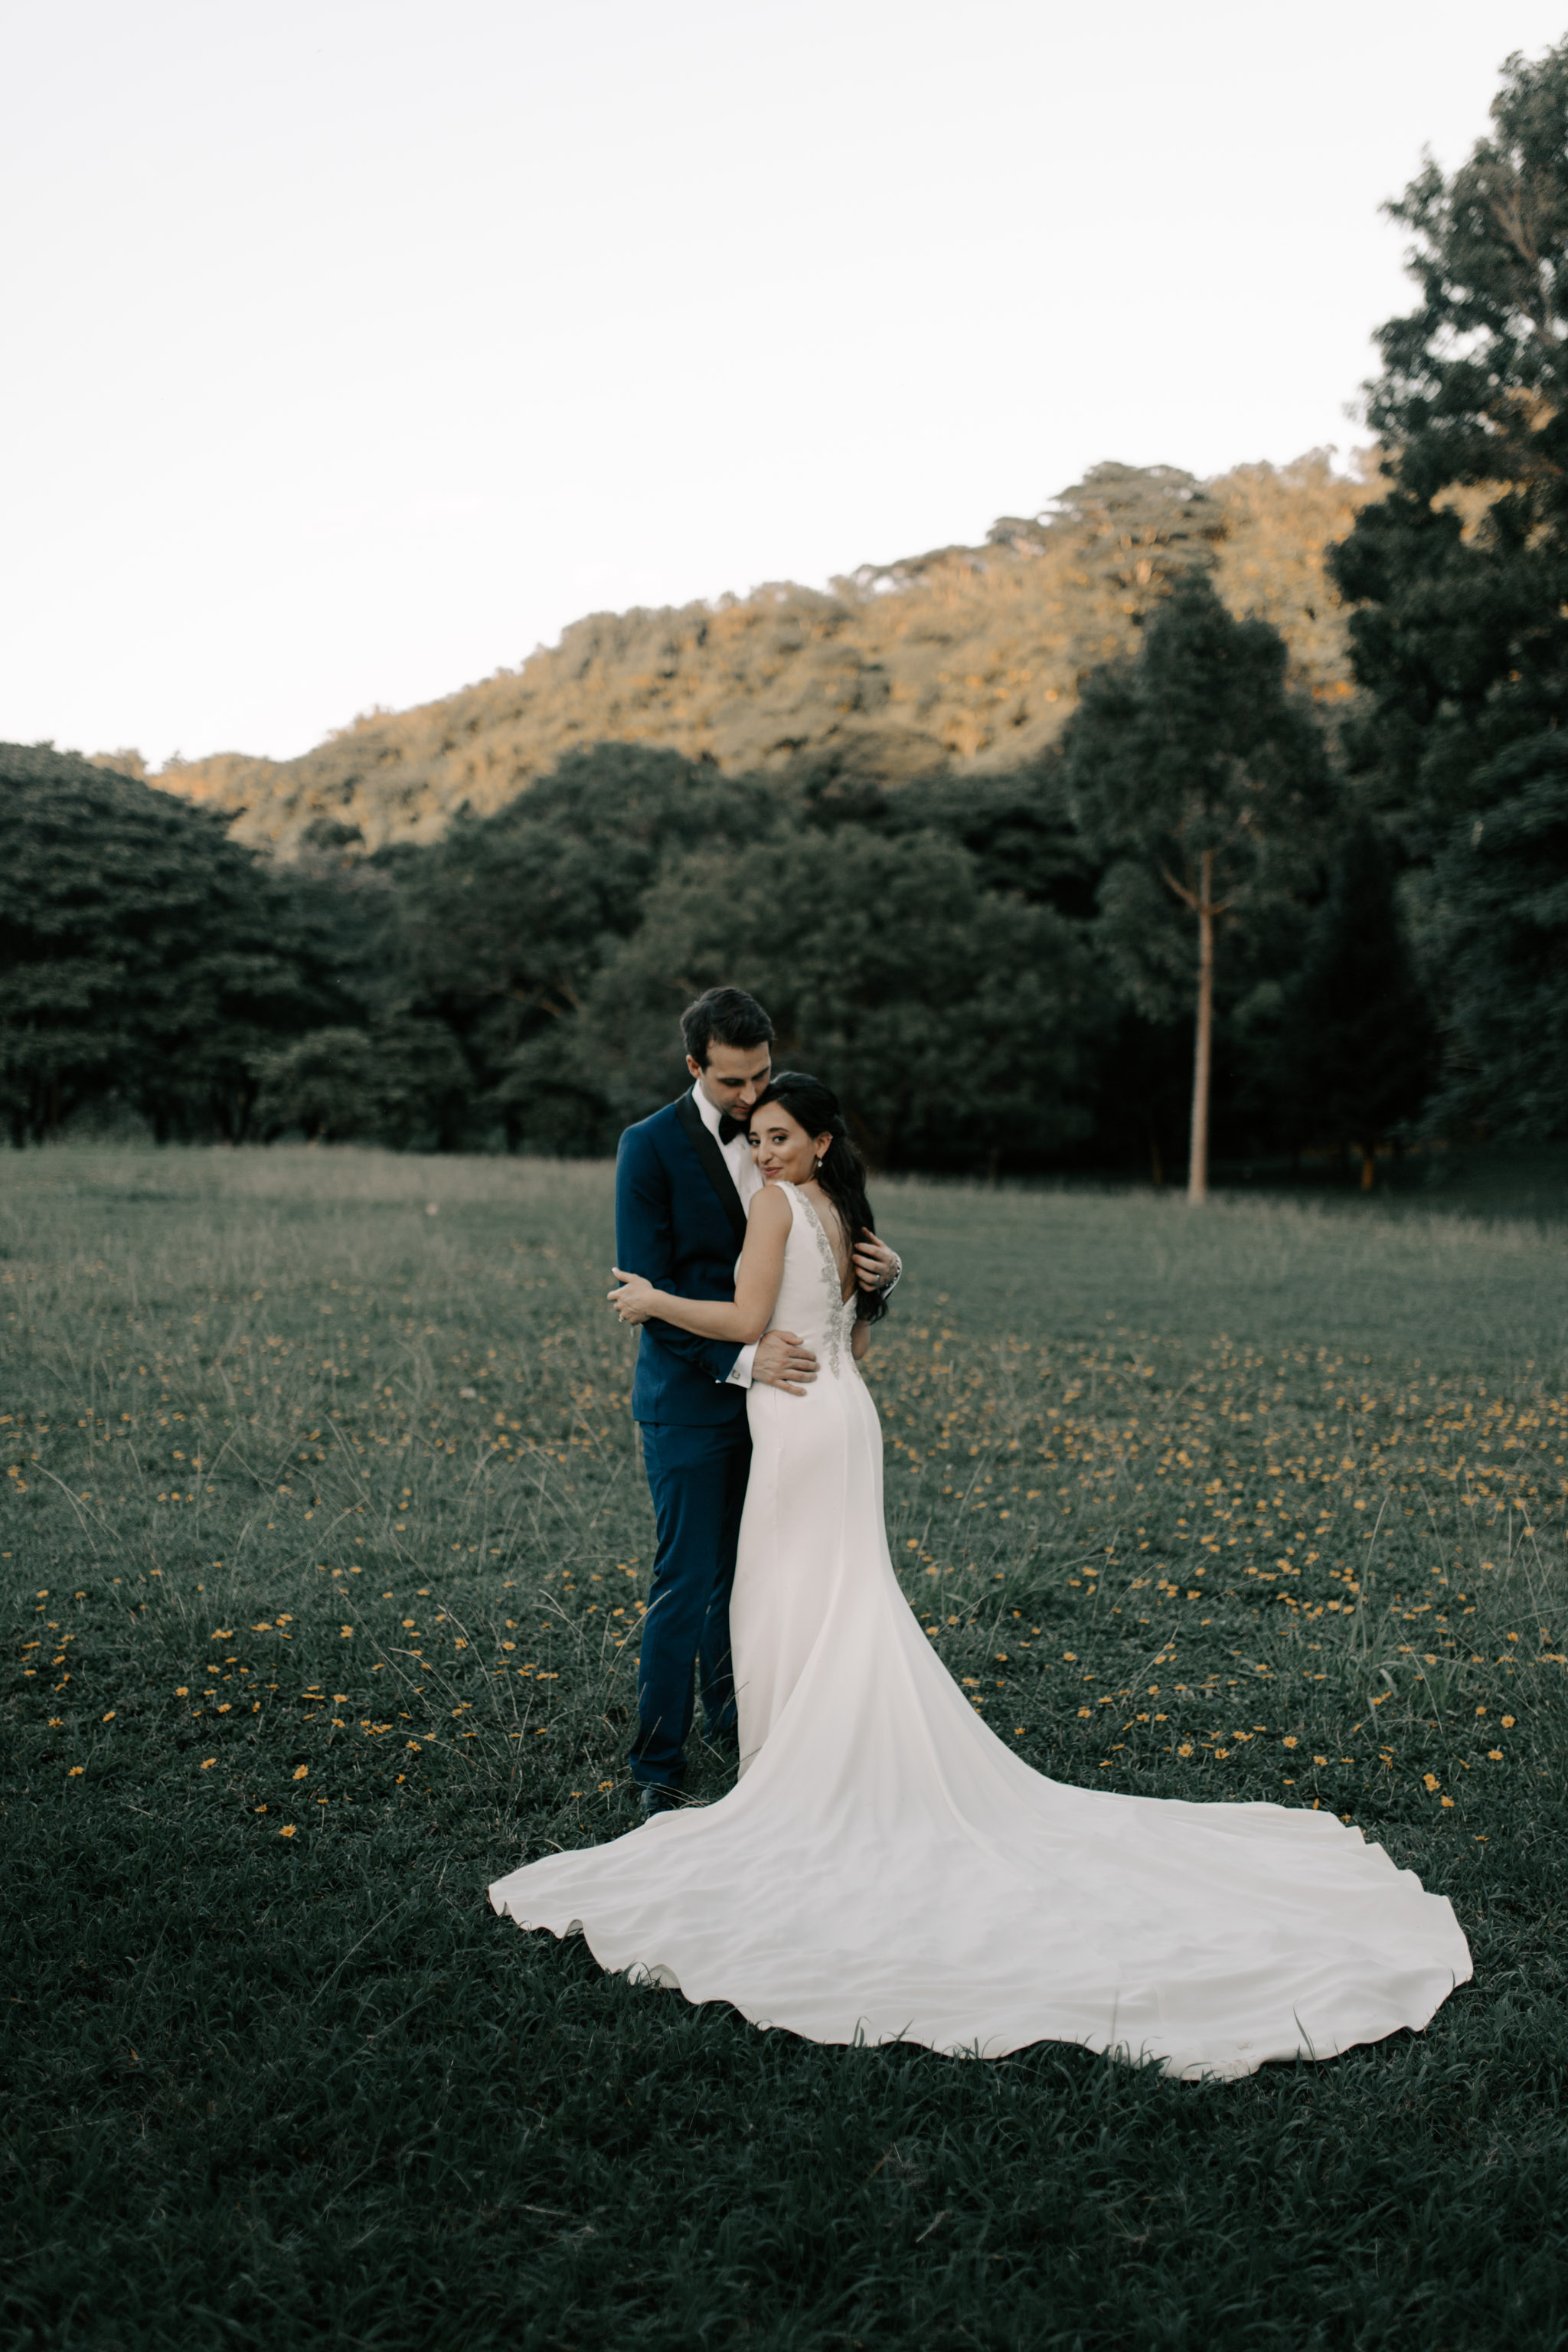 Beautiful Kauai Botanical Gardens Elopement by Hawaii Wedding Photographer Desiree Leilani